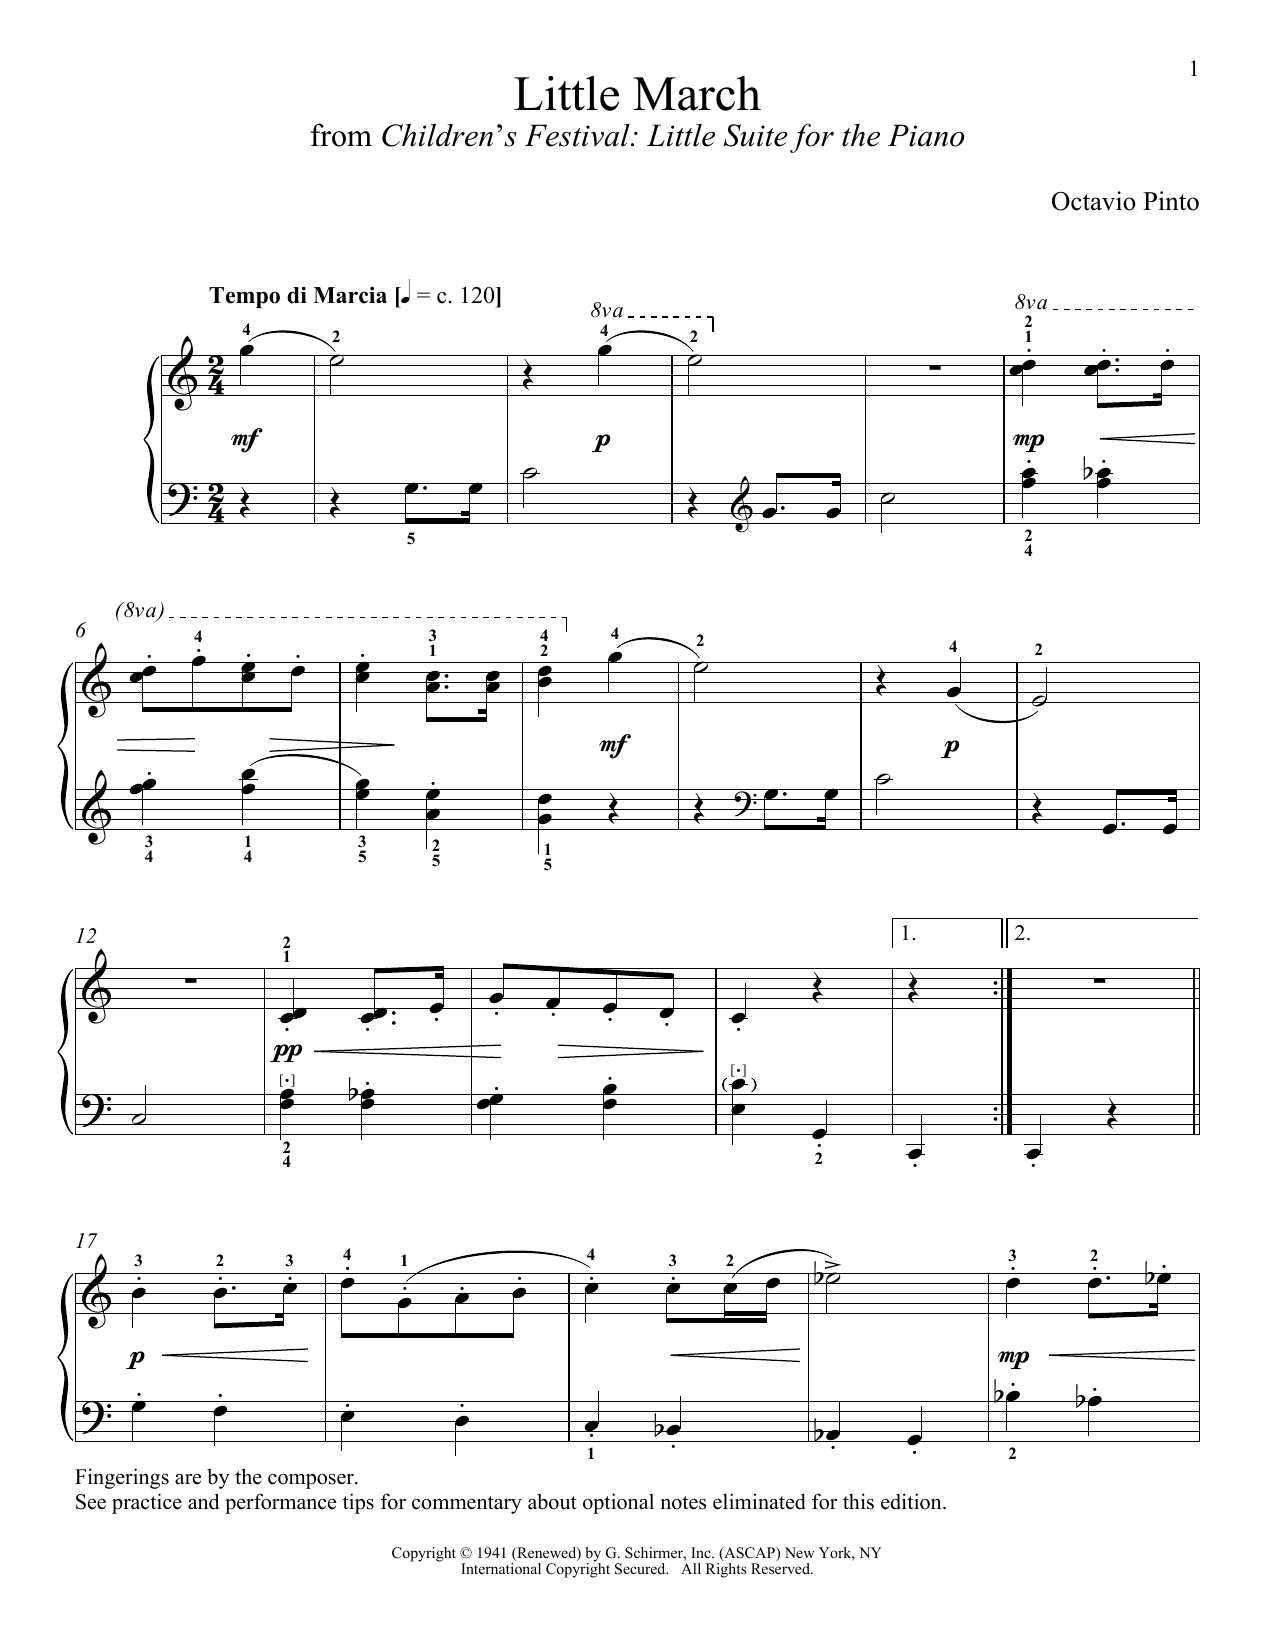 Download Octavio Pinto 'Little March' Digital Sheet Music Notes & Chords and start playing in minutes